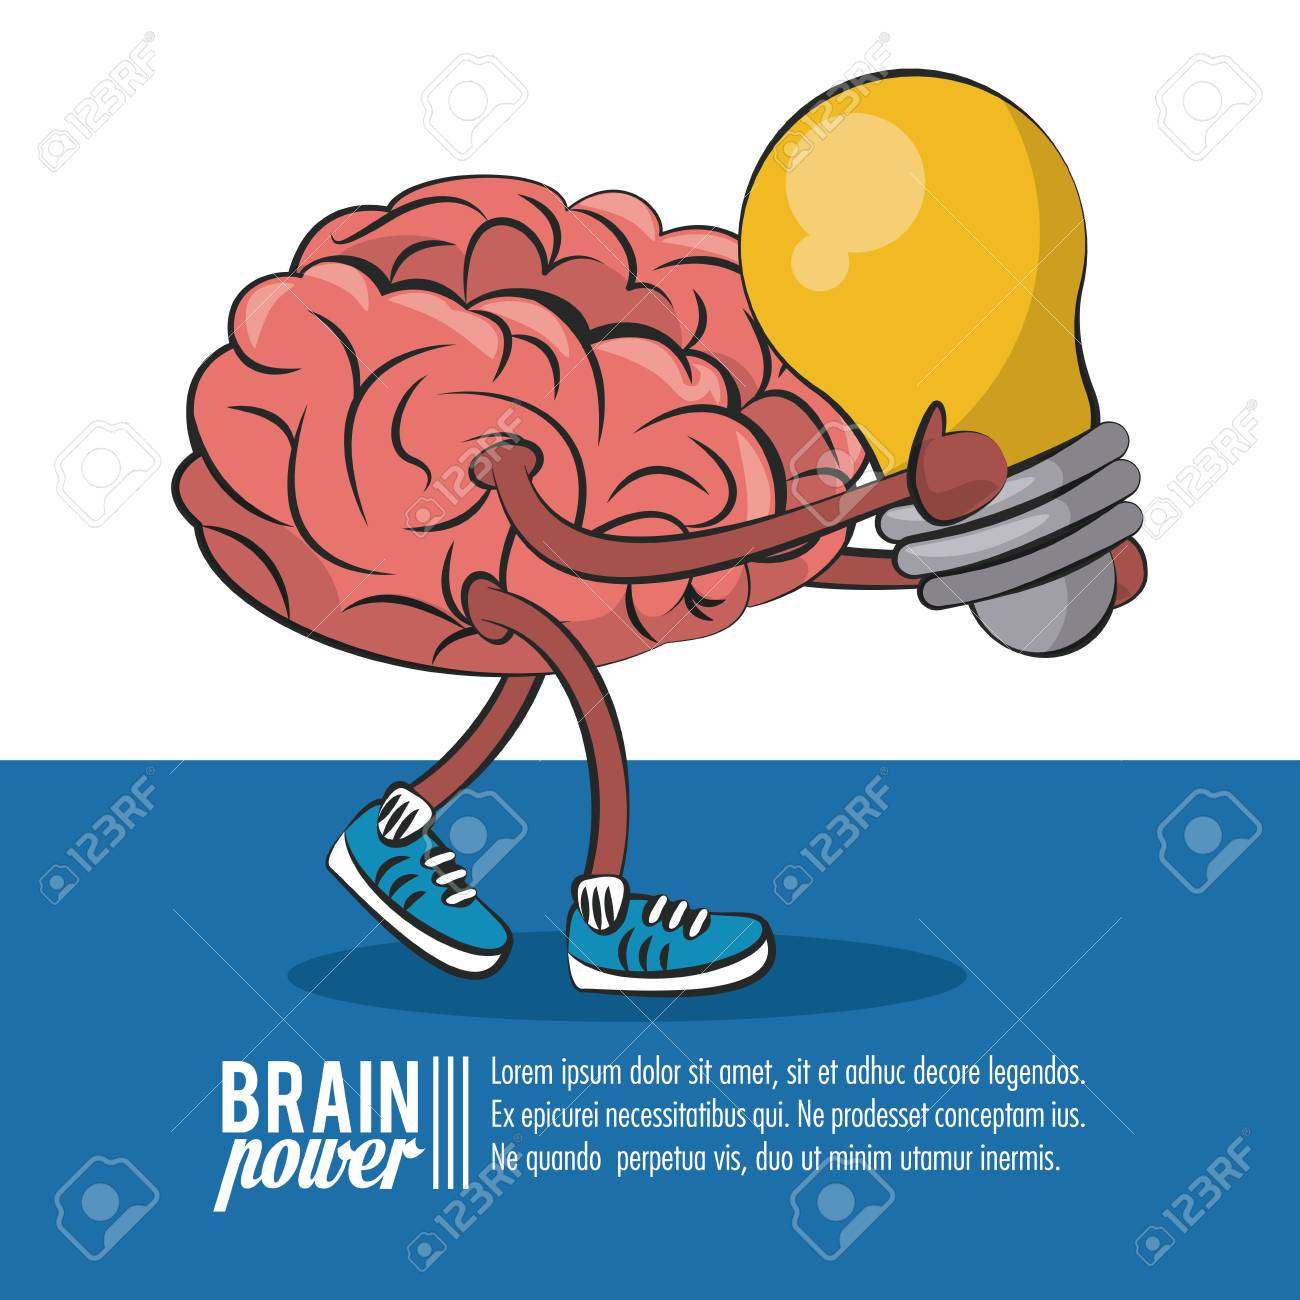 Brain Power Poster Template With Information Vector Illustration